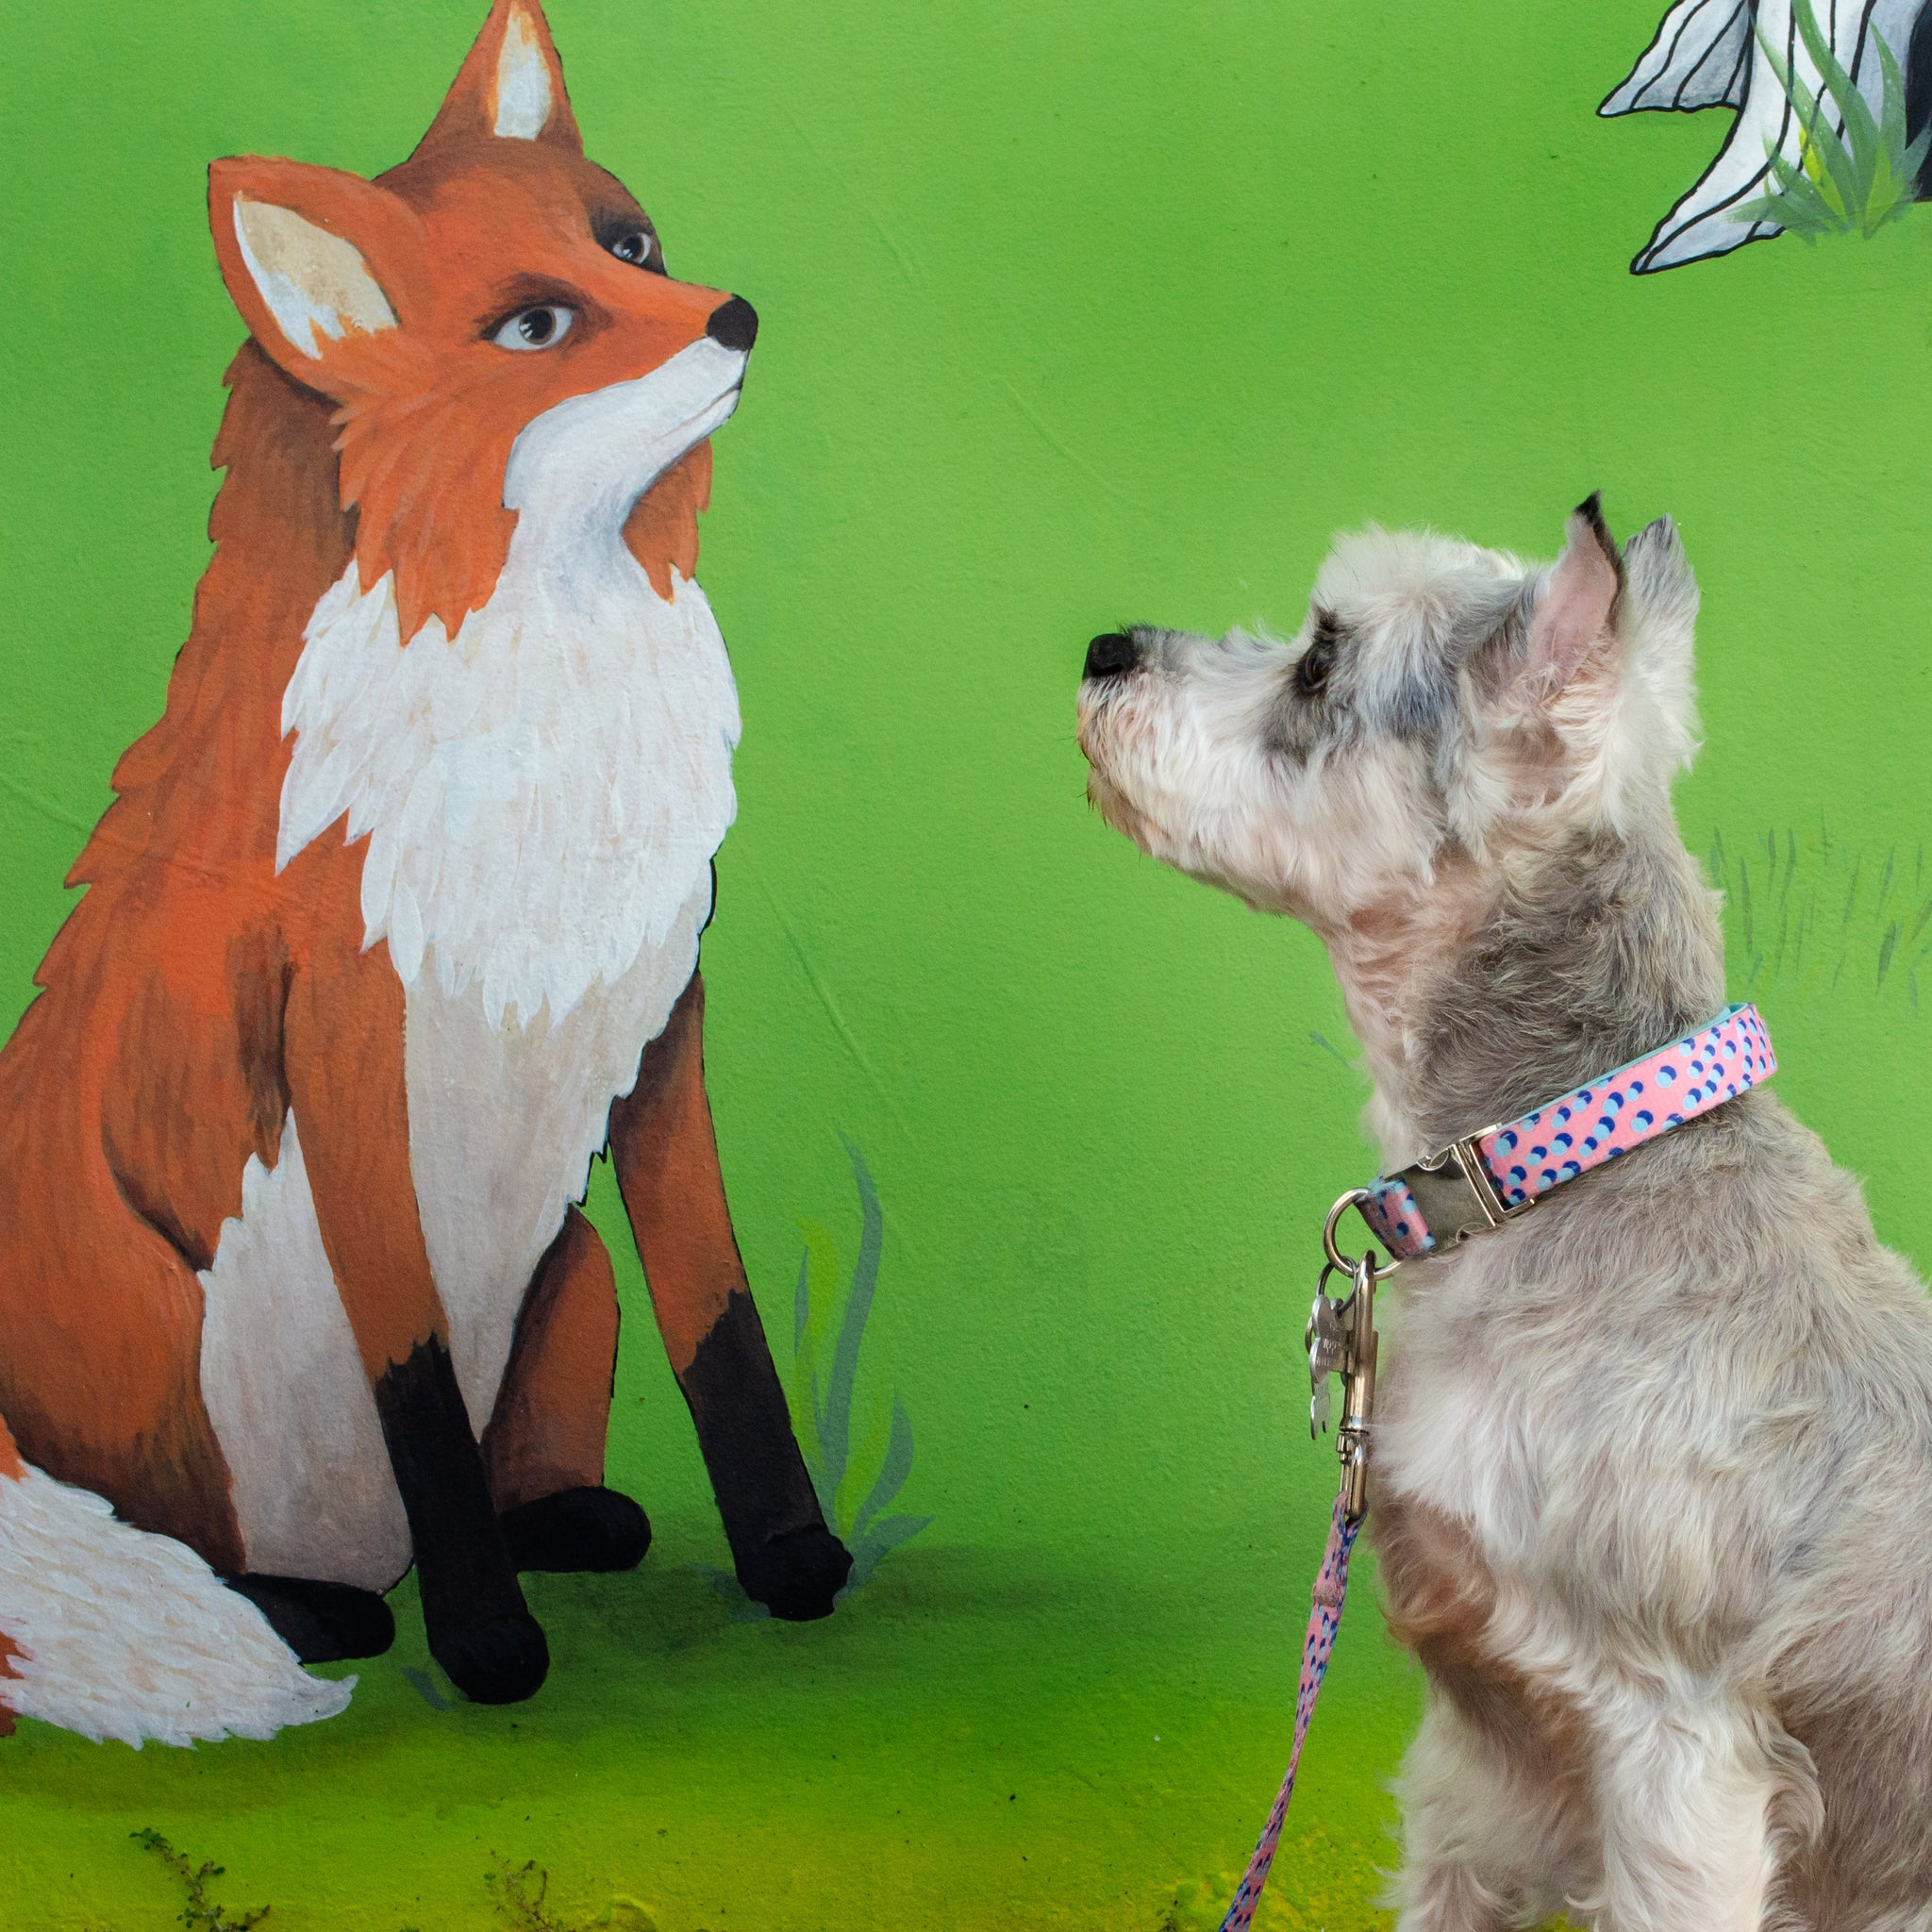 Kawaii Pinku - Padded Dog Collar - 6 Foot Dog Leash With Padded Handle - Orlando Florida - Wall Art - Mia Facing the Fox Painting on the Wall - Schnauzer